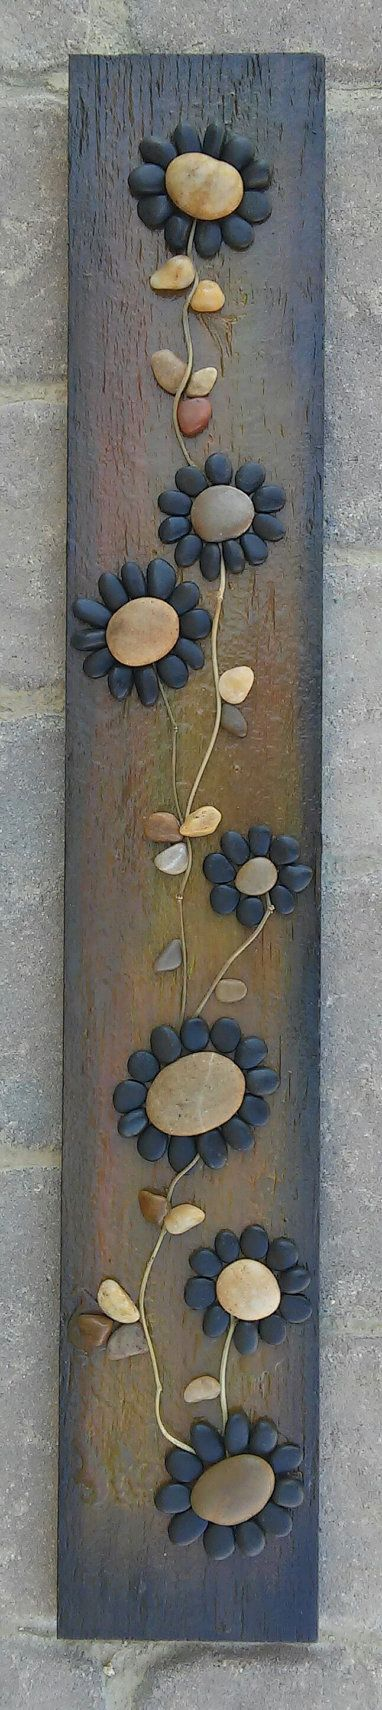 Pebble Art (string of beautiful black flowers) handmade from all natural materials including reclaimed wood, pebbles, twigs 5x30